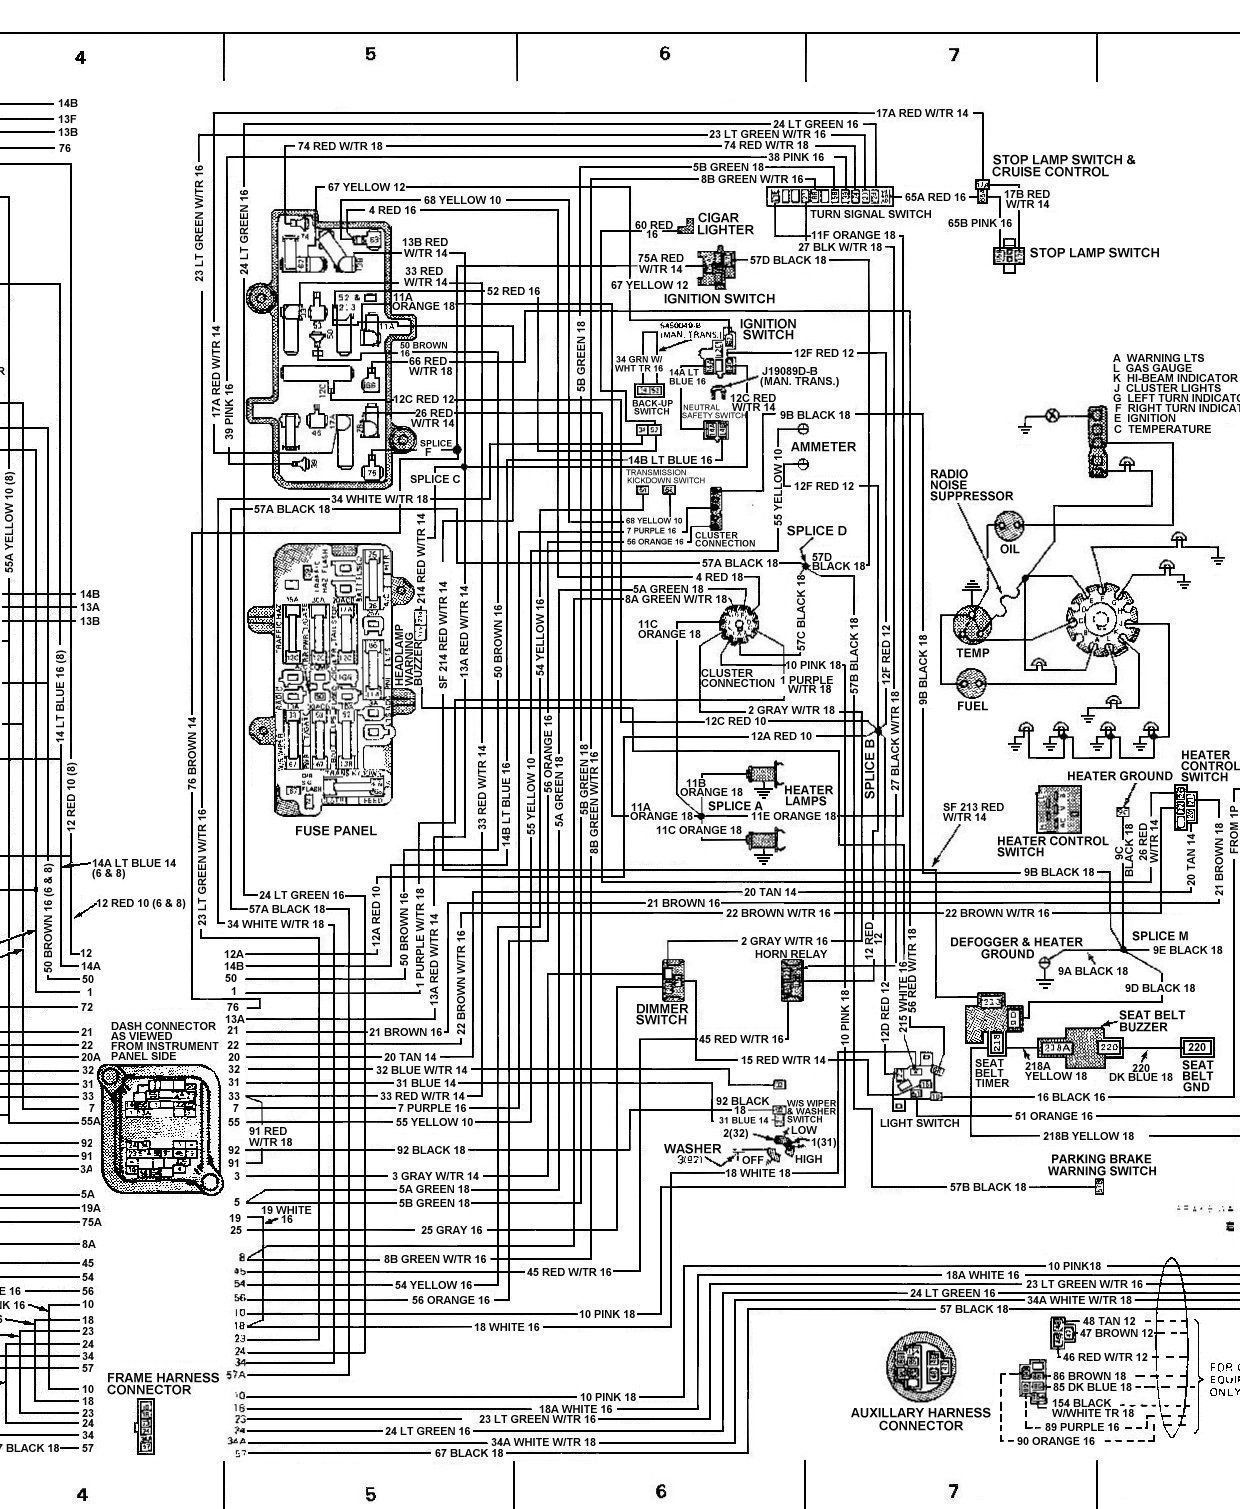 chrysler aspen wiring diagram with Electrical Wiring Diagram 2003 Vw Jetta Volkswagen on T365661 furthermore 79 Aspen Wont Start When Warm also 2008 Jeep  pass Fuse Box Diagram further Wiring Diagrams 2008 Chrysler Aspen likewise Dart.